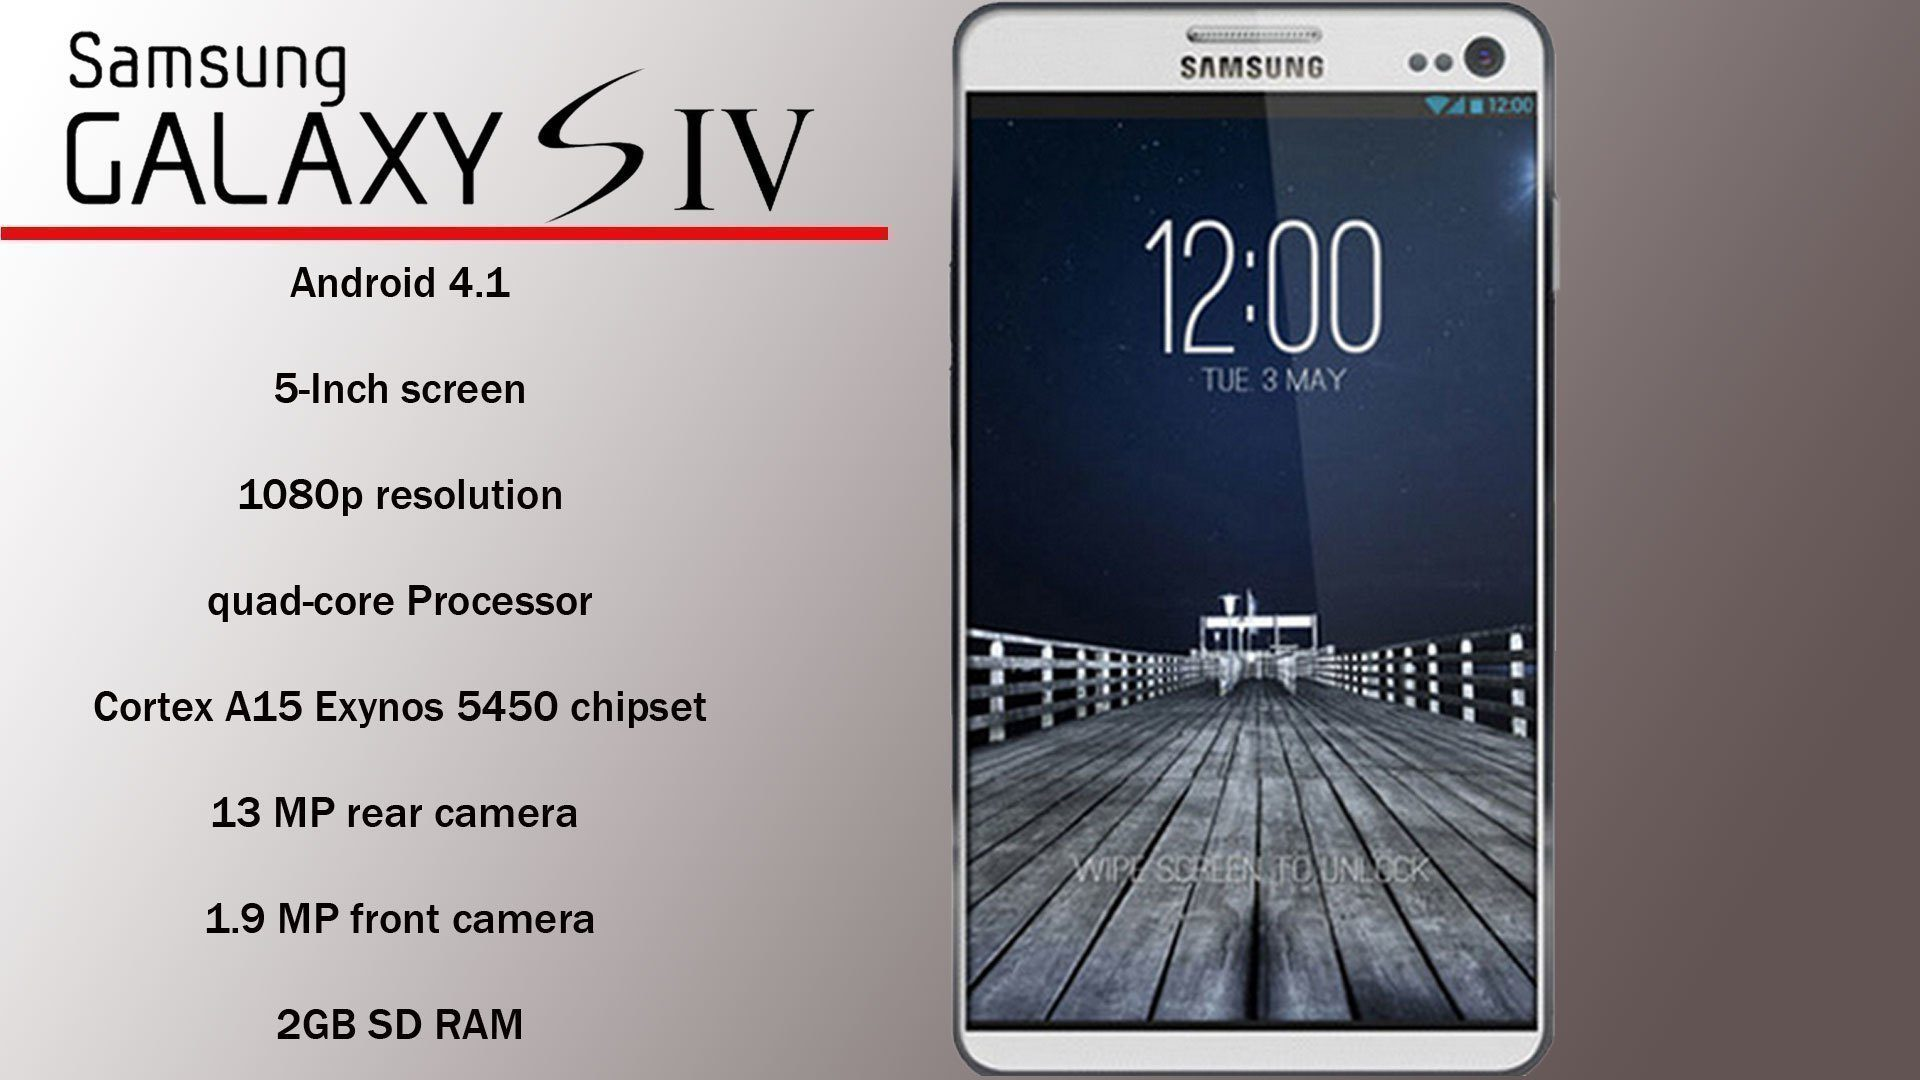 Wallpaper-Samsung-Galaxy-SIV-Specs-And-Release